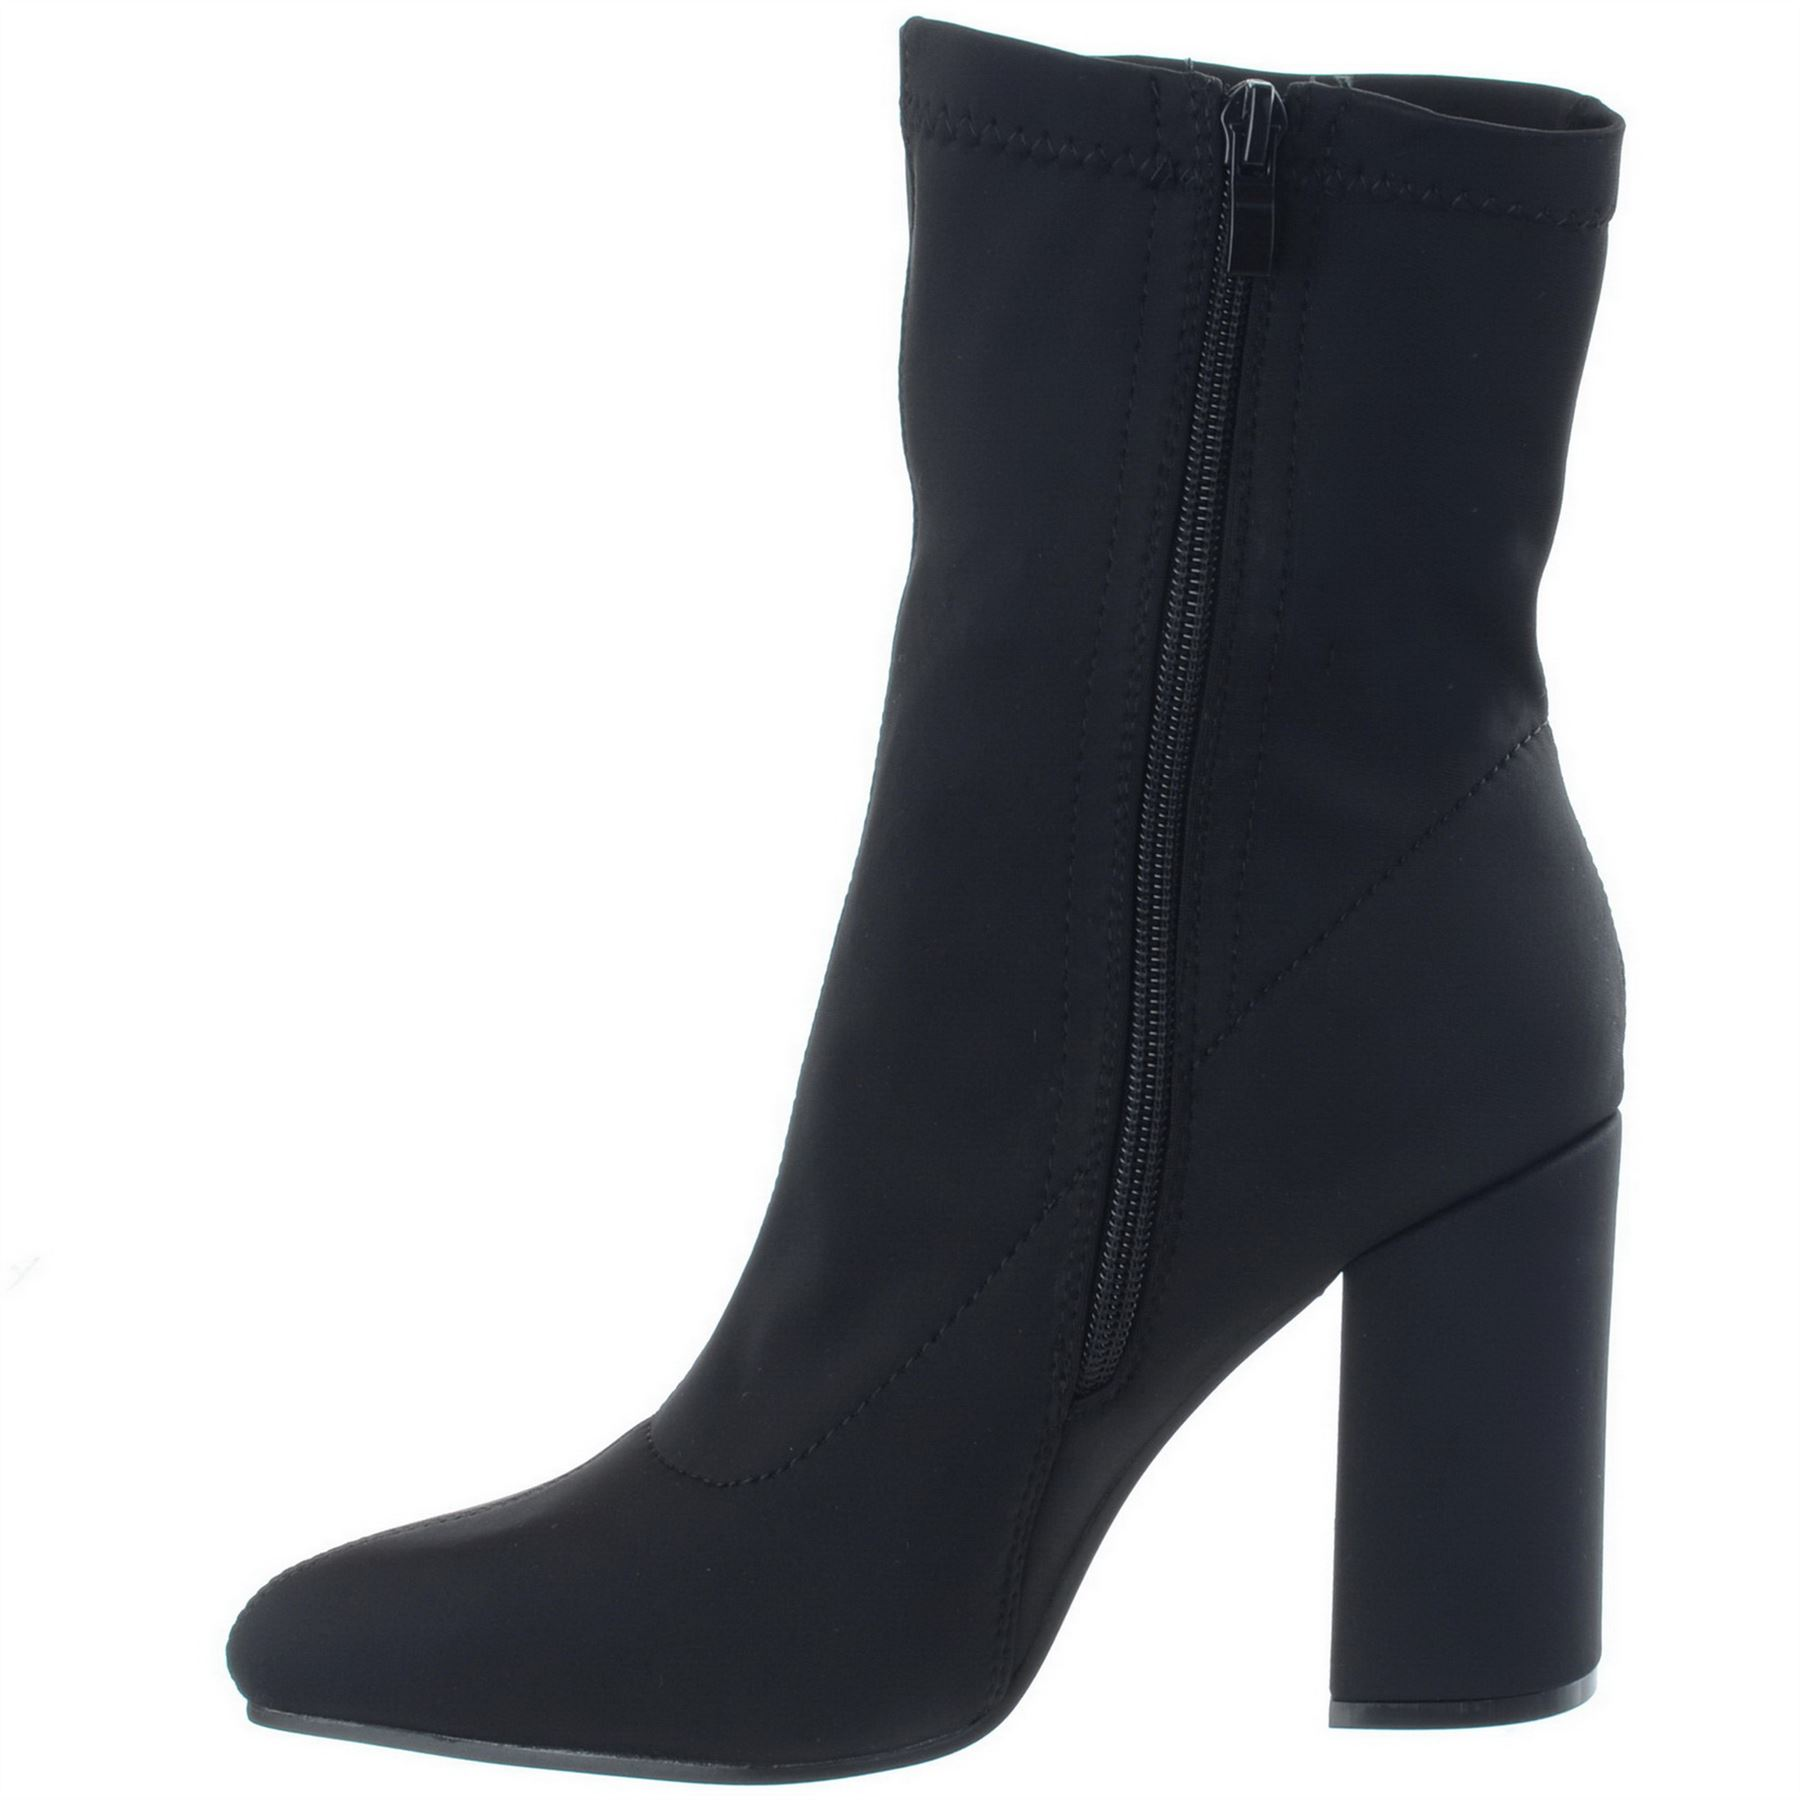 Womens-Ladies-Lycra-Stretch-Block-Heel-Pointy-Toe-Zip-Up-Ankle-Boots-Shoes-Size